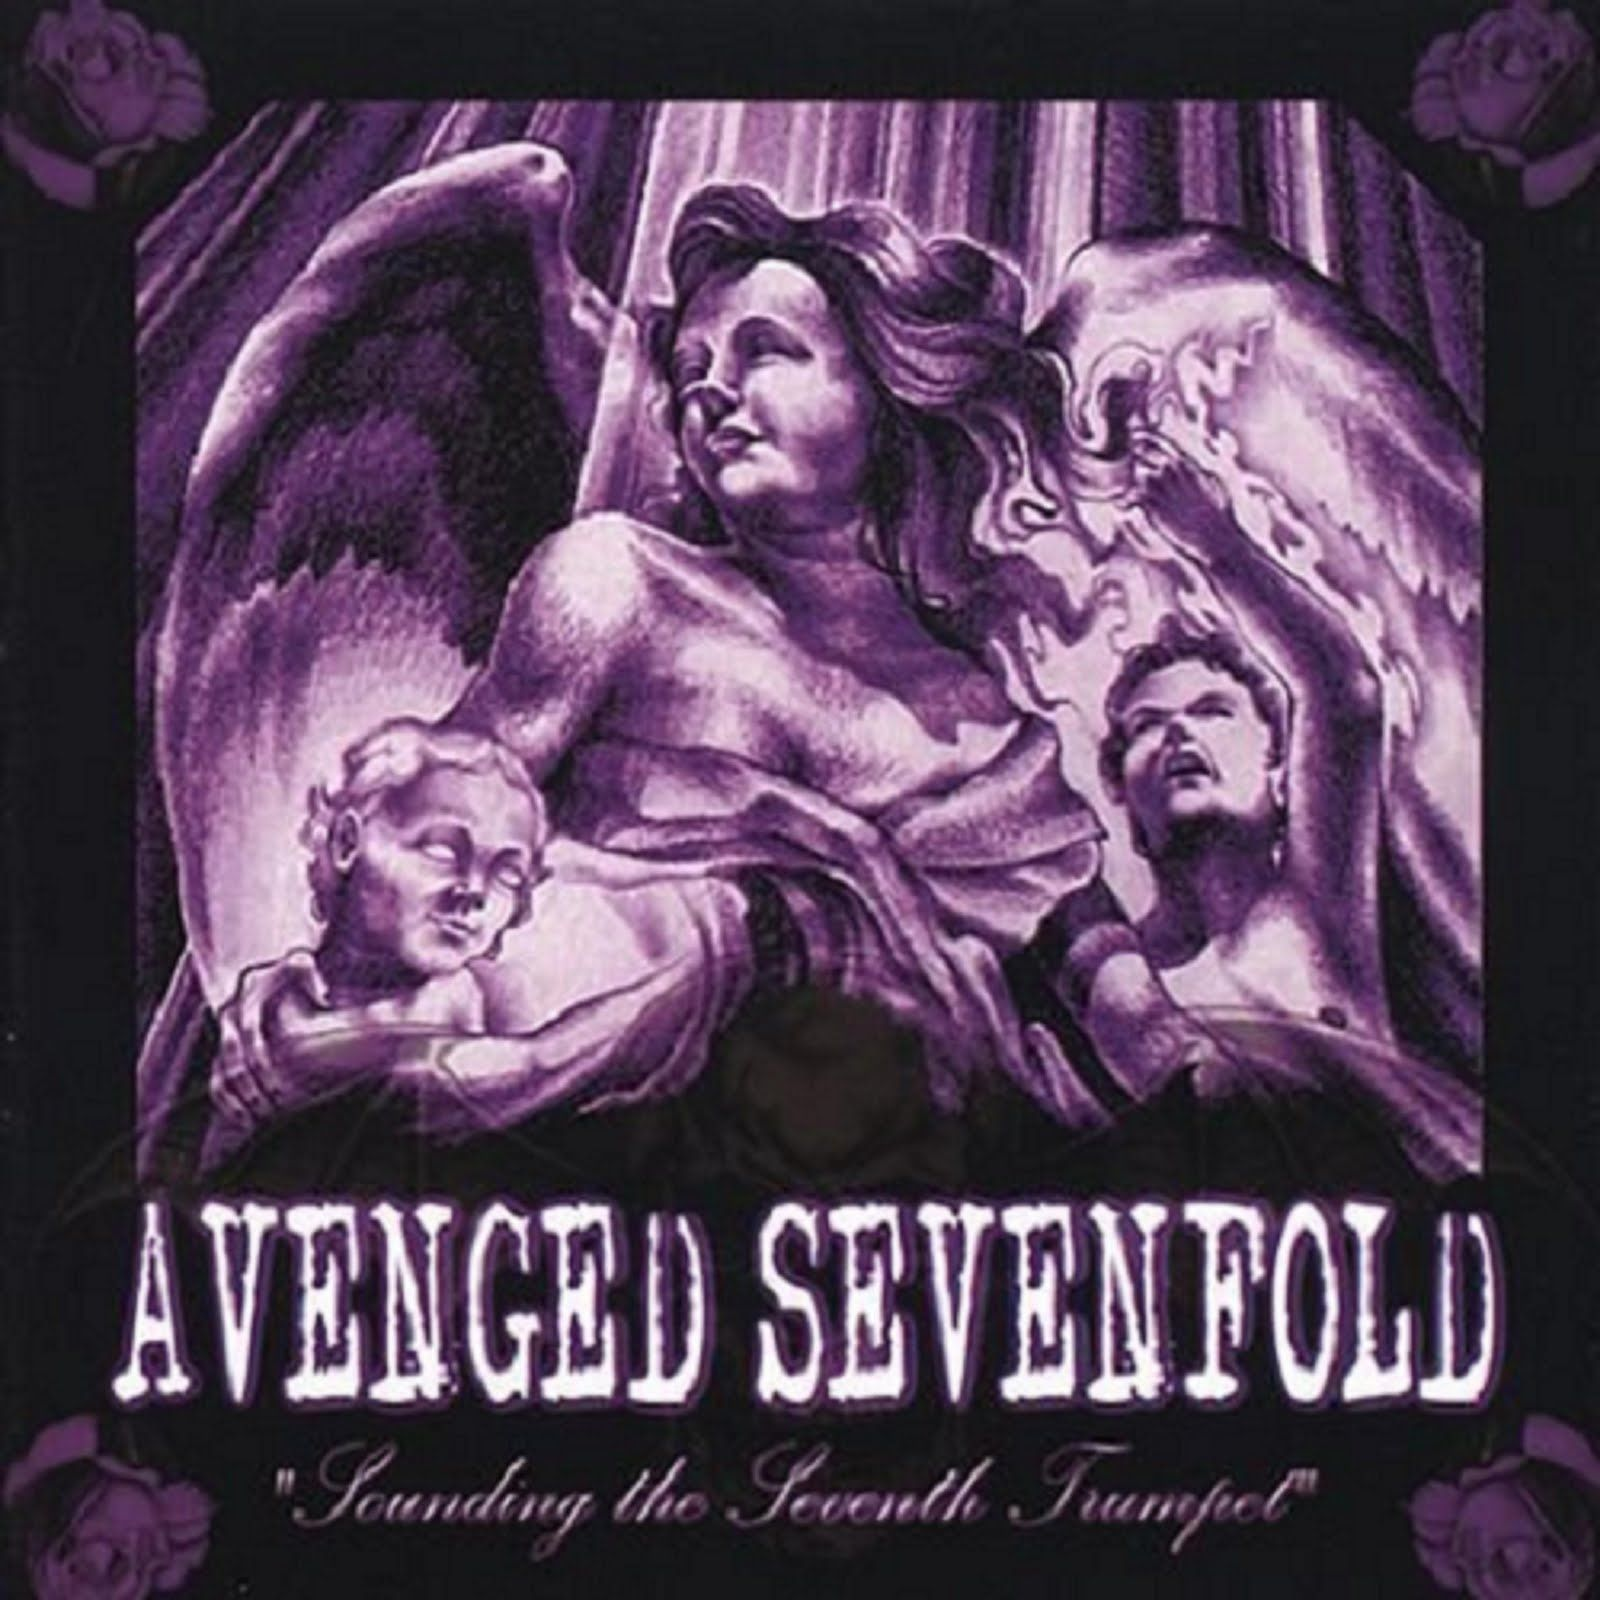 Pin by Album Think on Avenged Sevenfold in 2019 | Pinterest | Seven